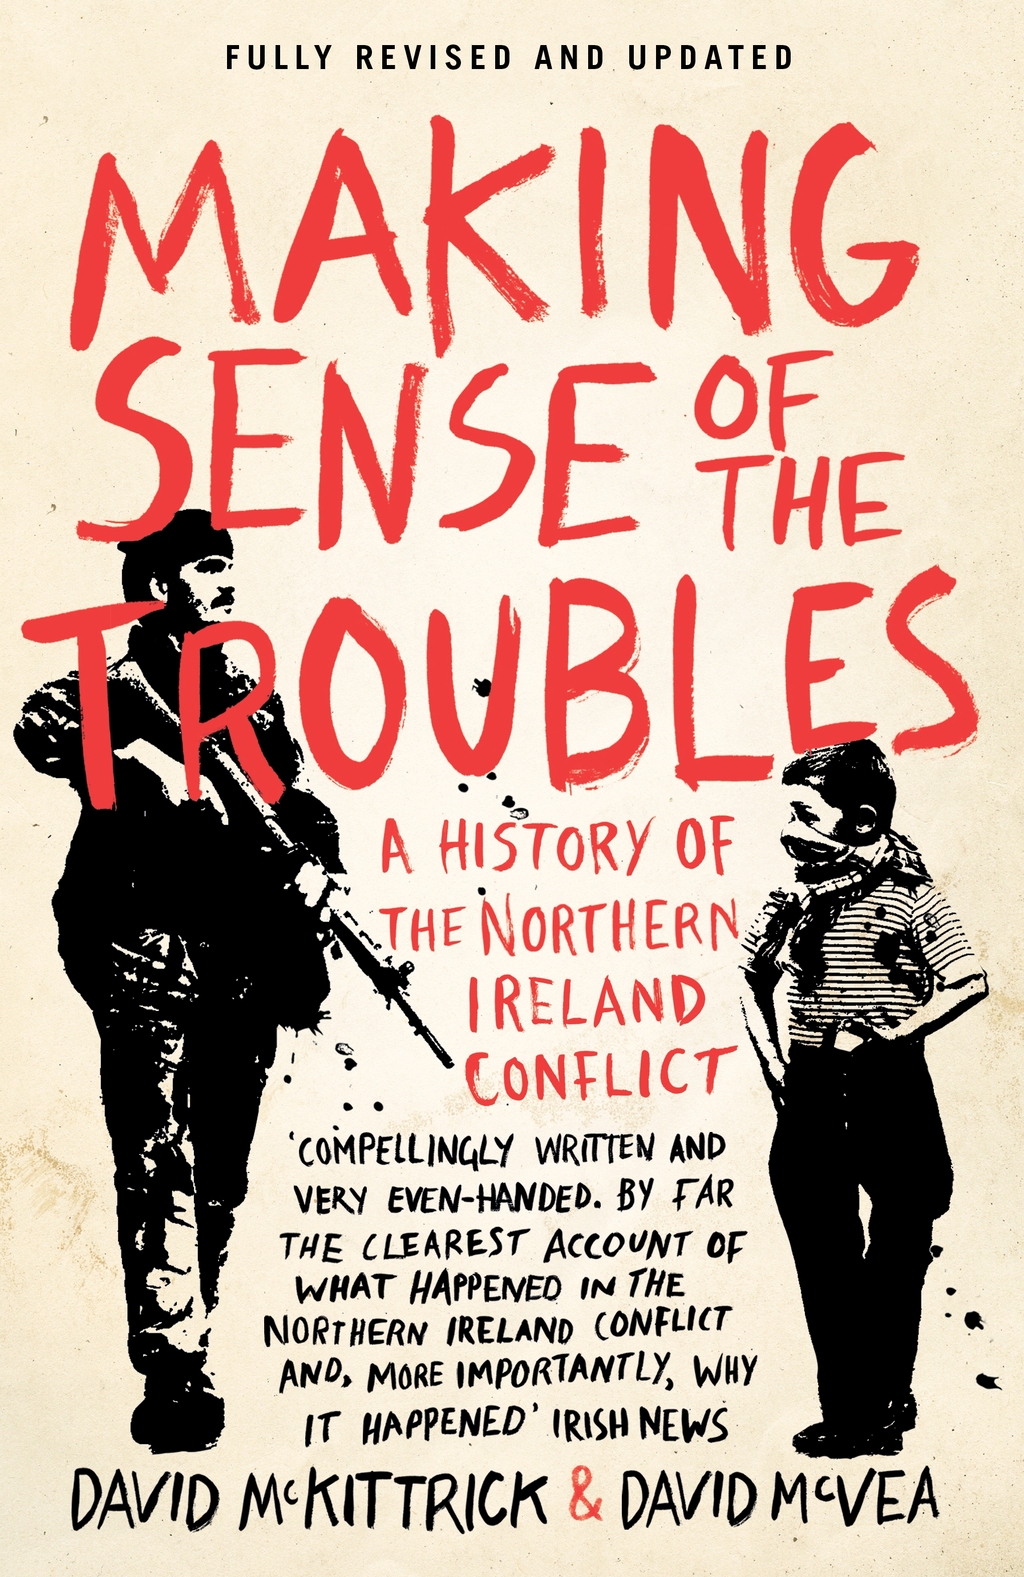 Making Sense of the Troubles A History of the Northern Ireland Conflict